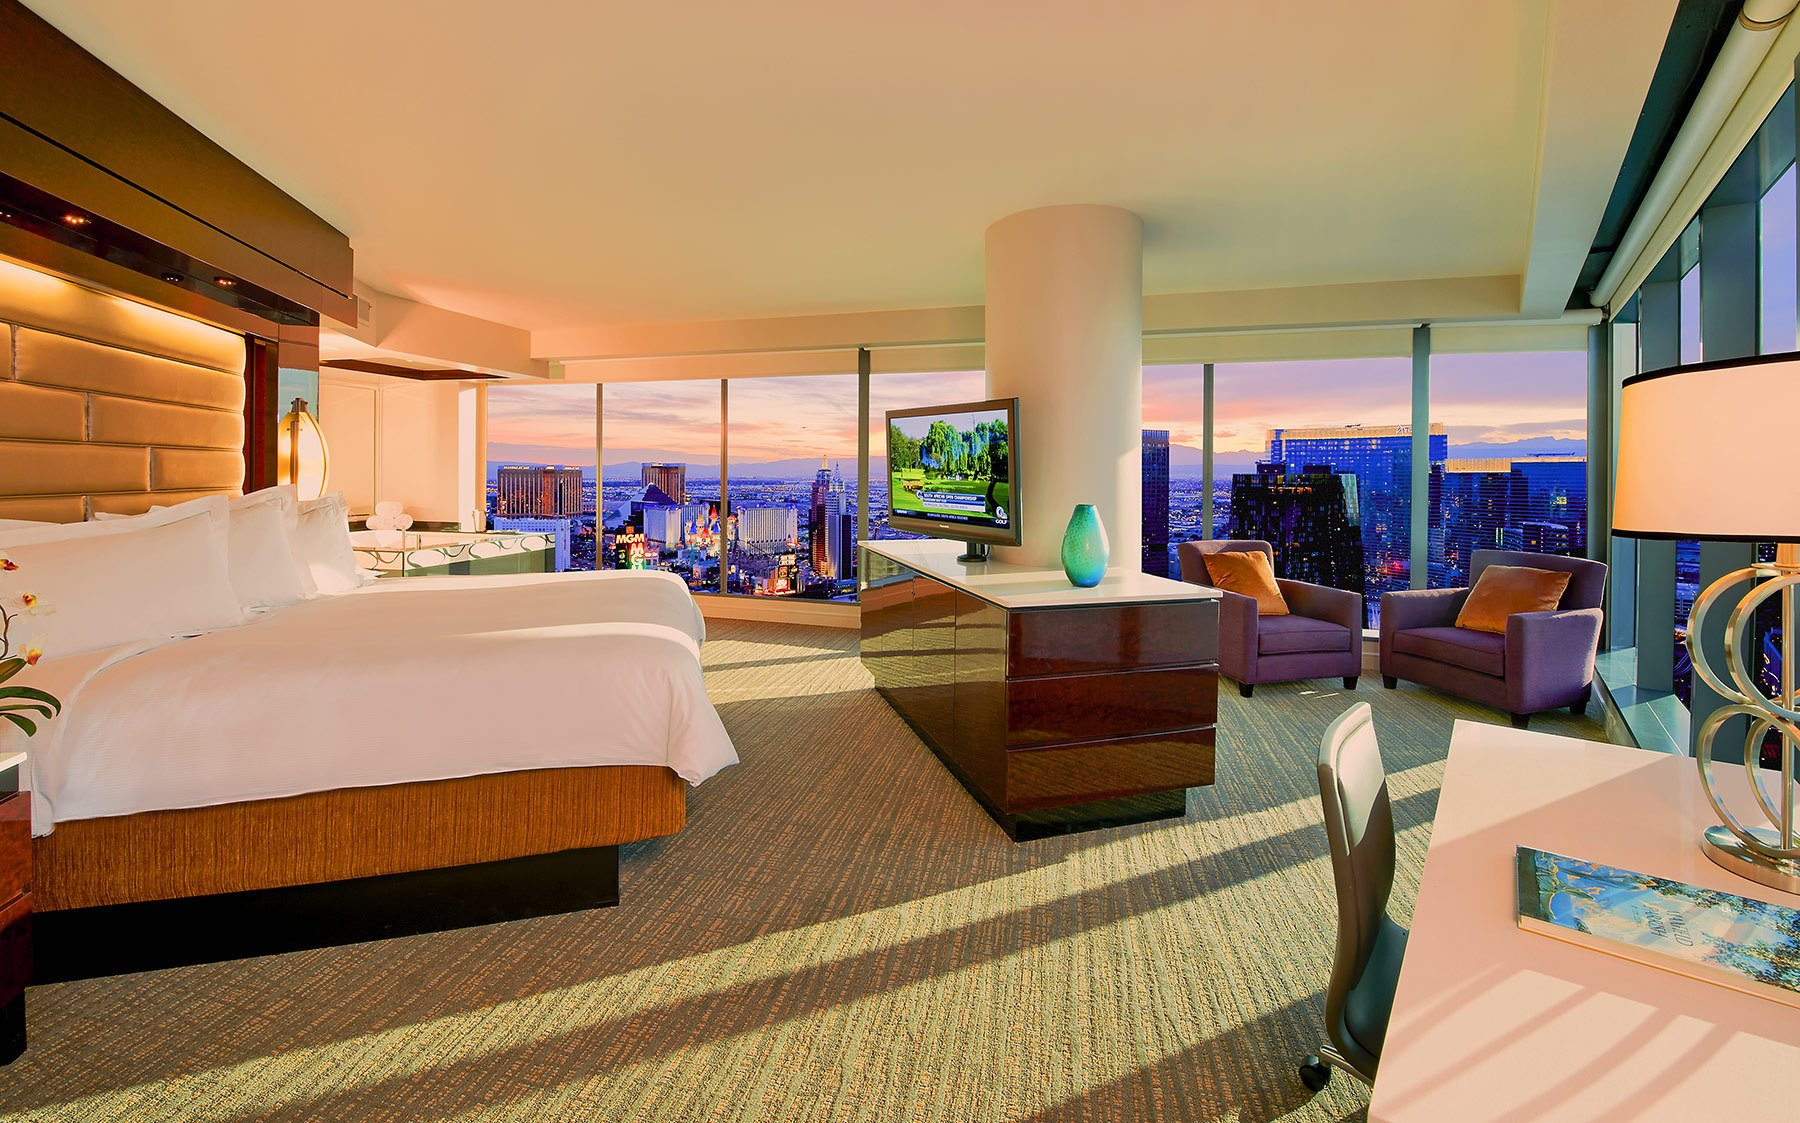 How Do I Get Free Hotel Rooms In Las Vegas